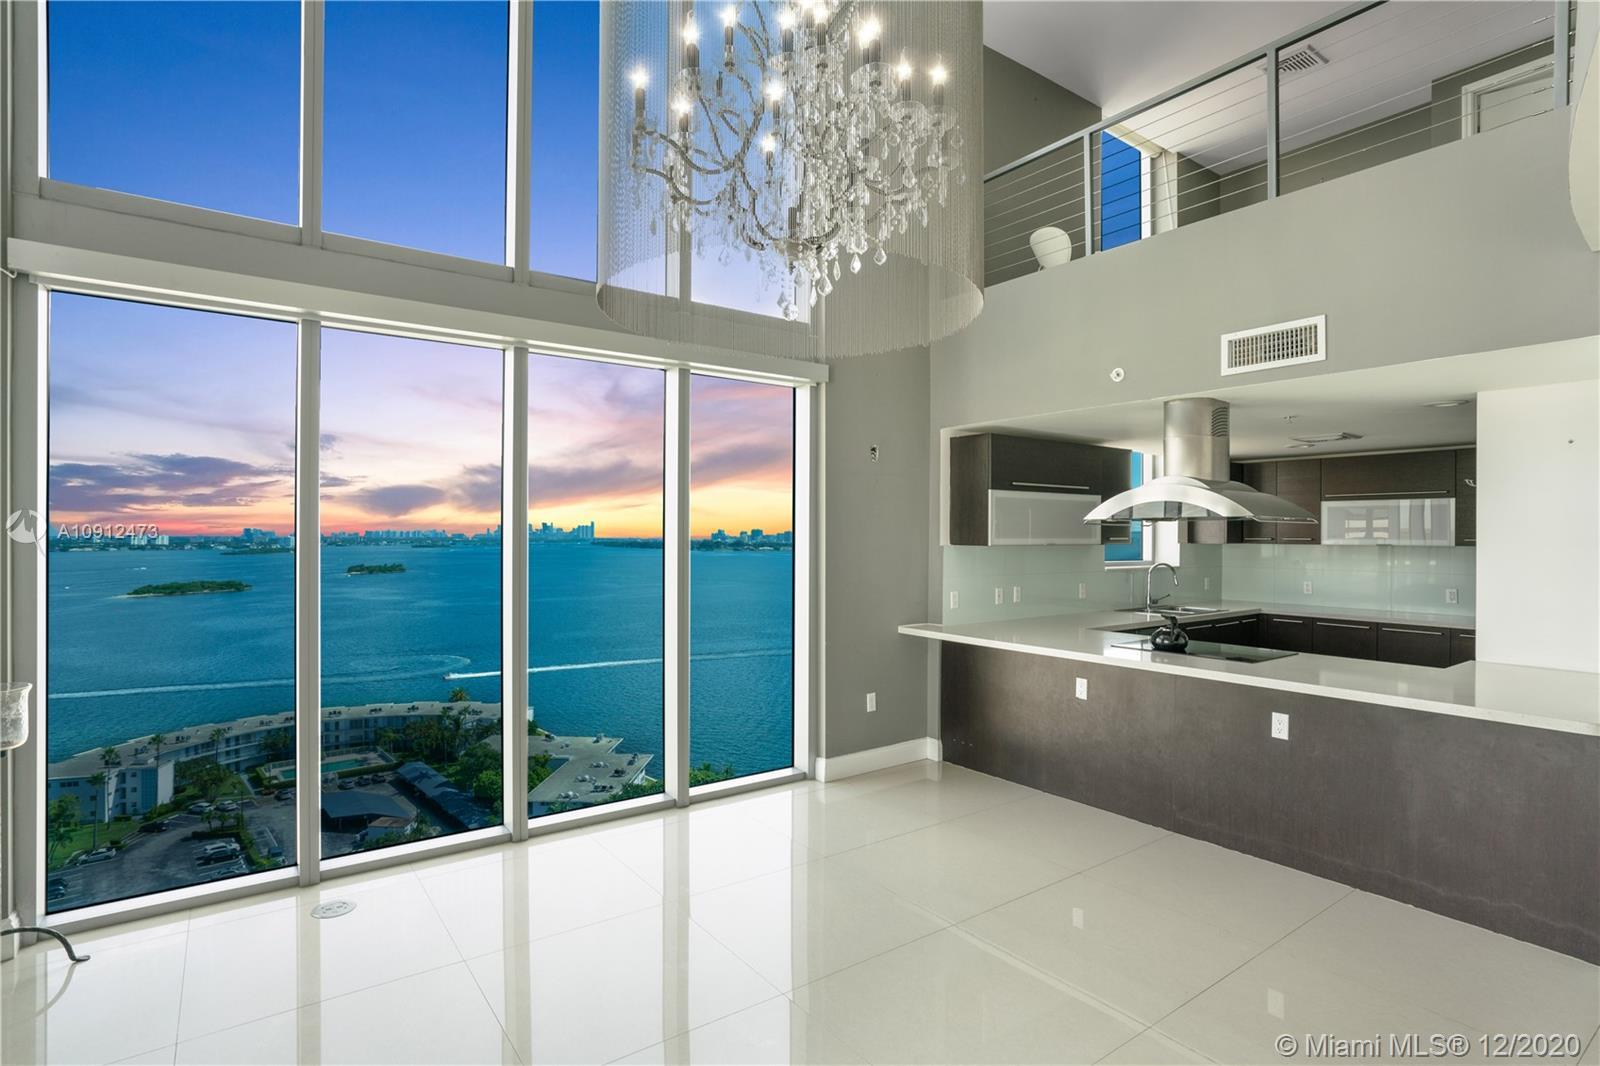 Lowest priced 2-story penthouse at Eloquence On The Bay! An unprecedented opportunity awaits for tho